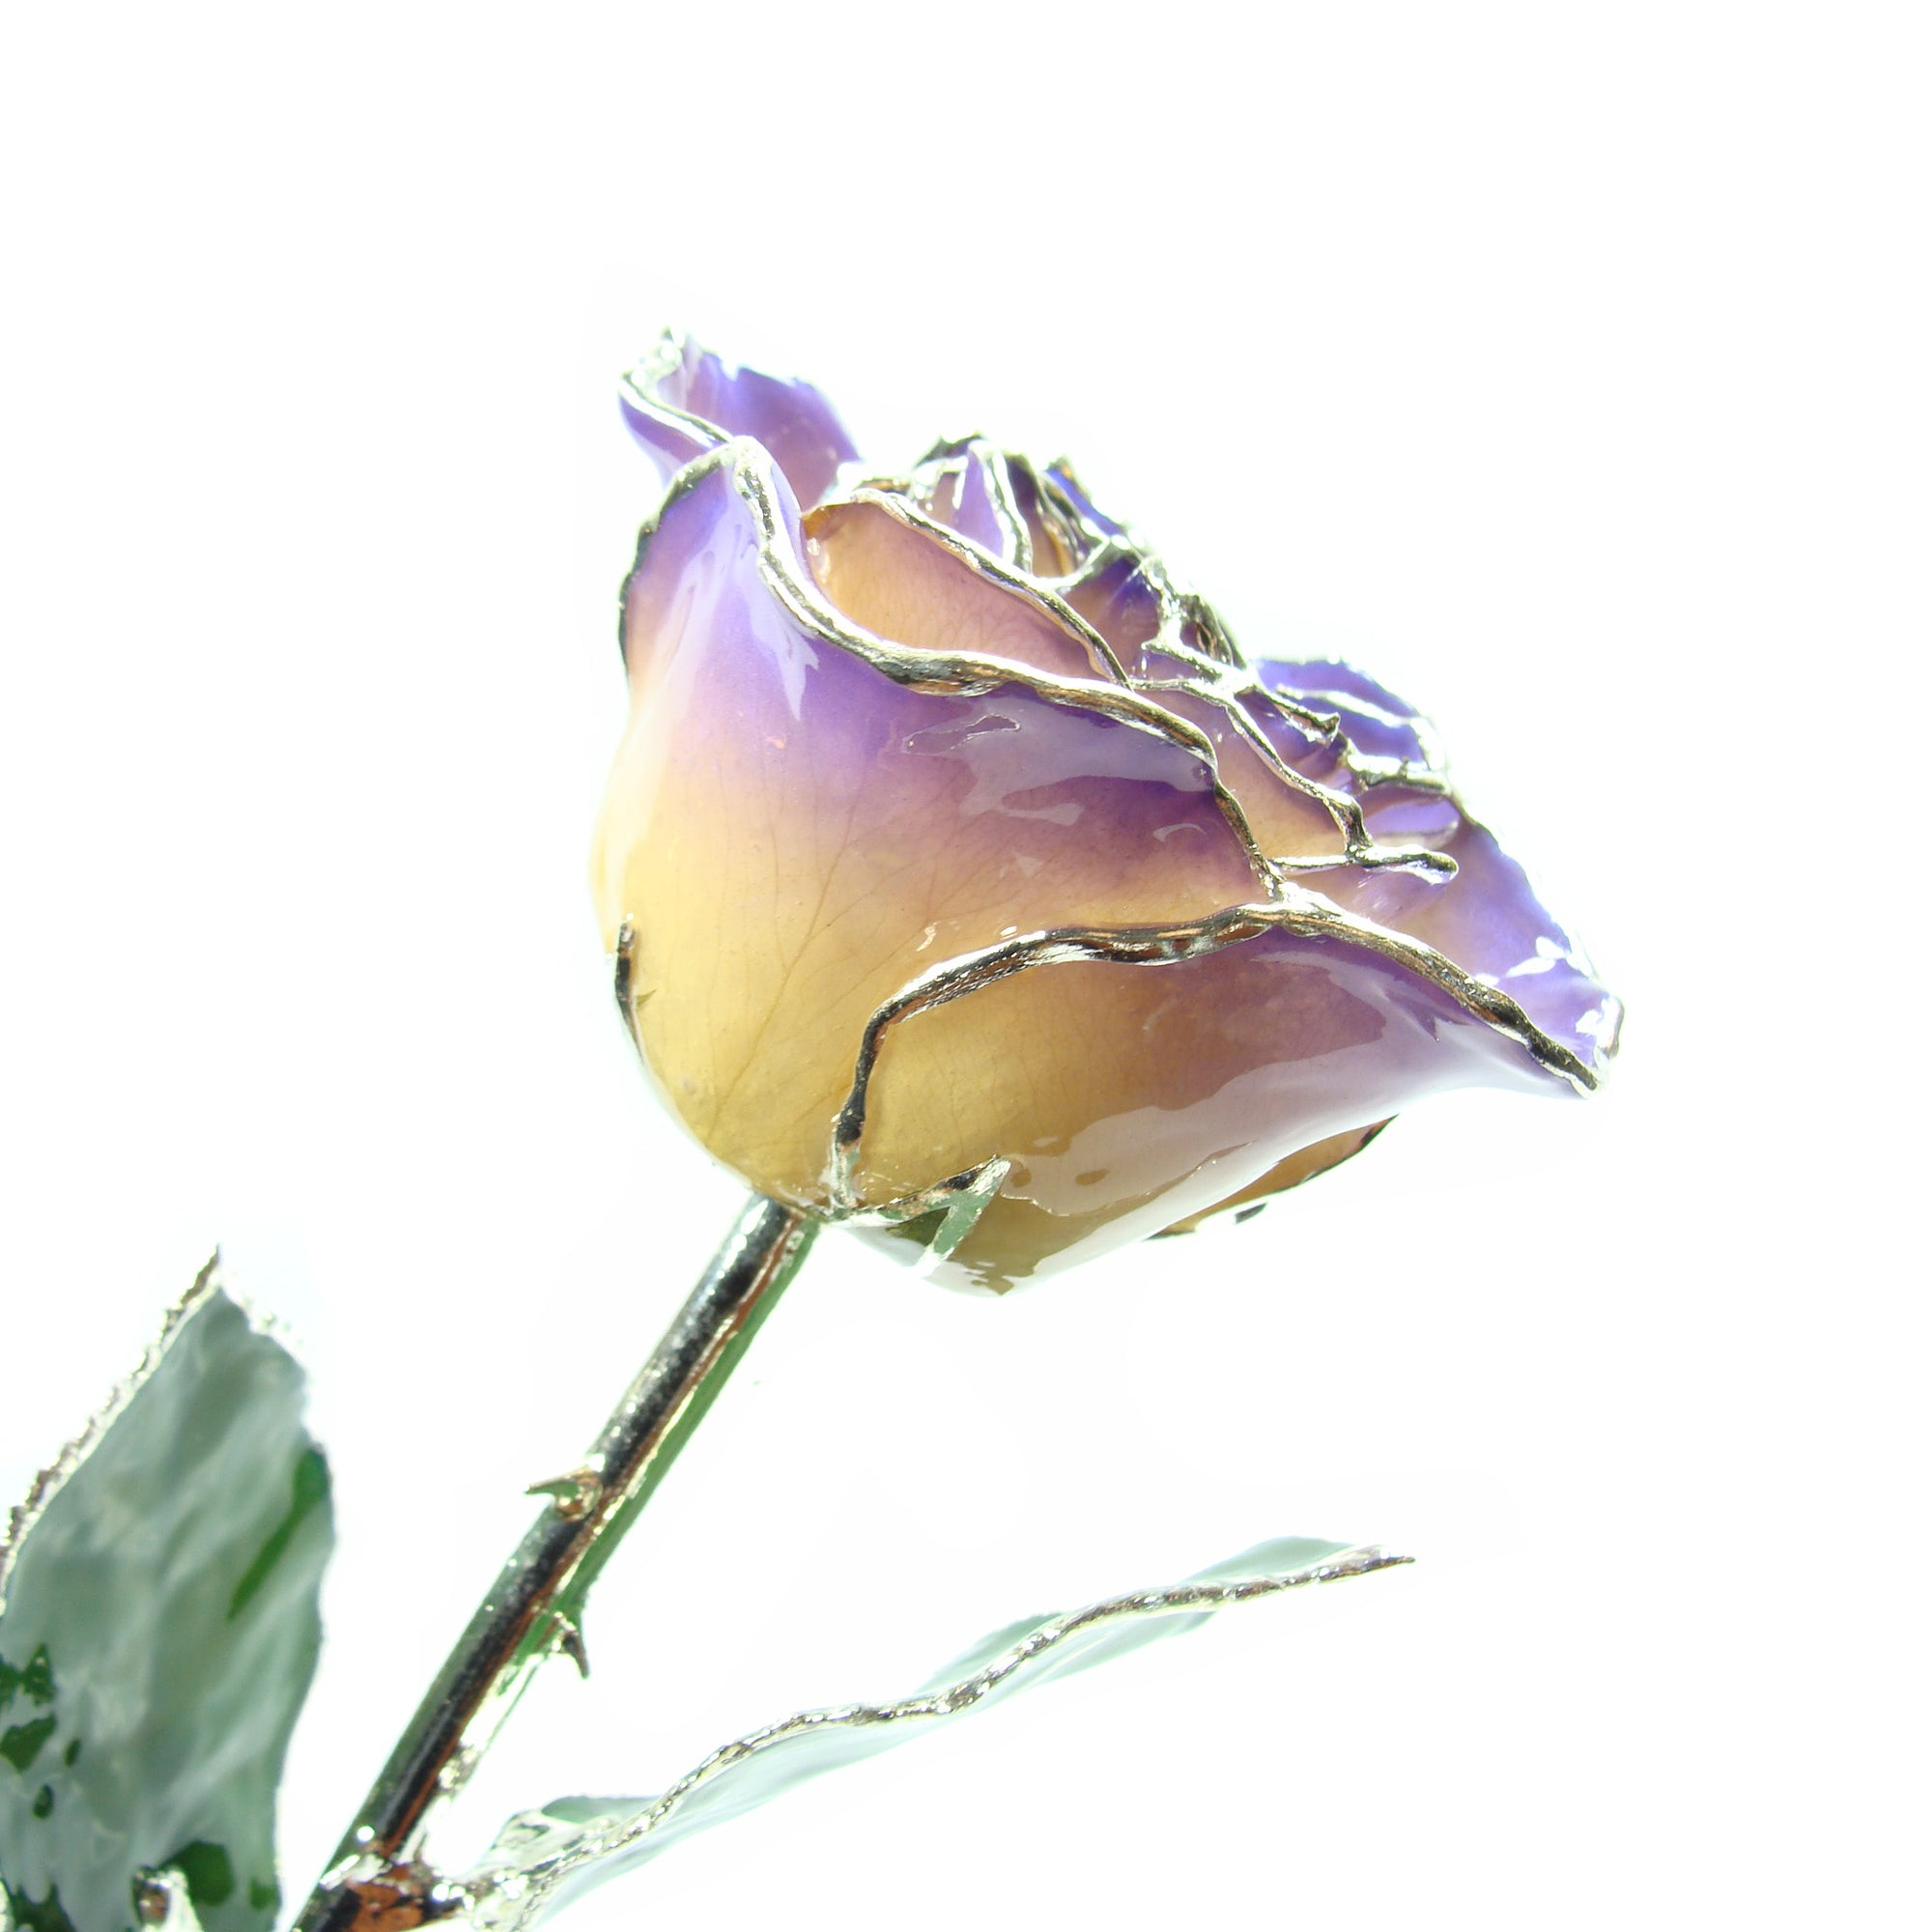 Silver Trimmed Forever Rose with White to Purple Petals. View of Stem, Leaves, and Rose Petals and Showing Detail of Silver Trim